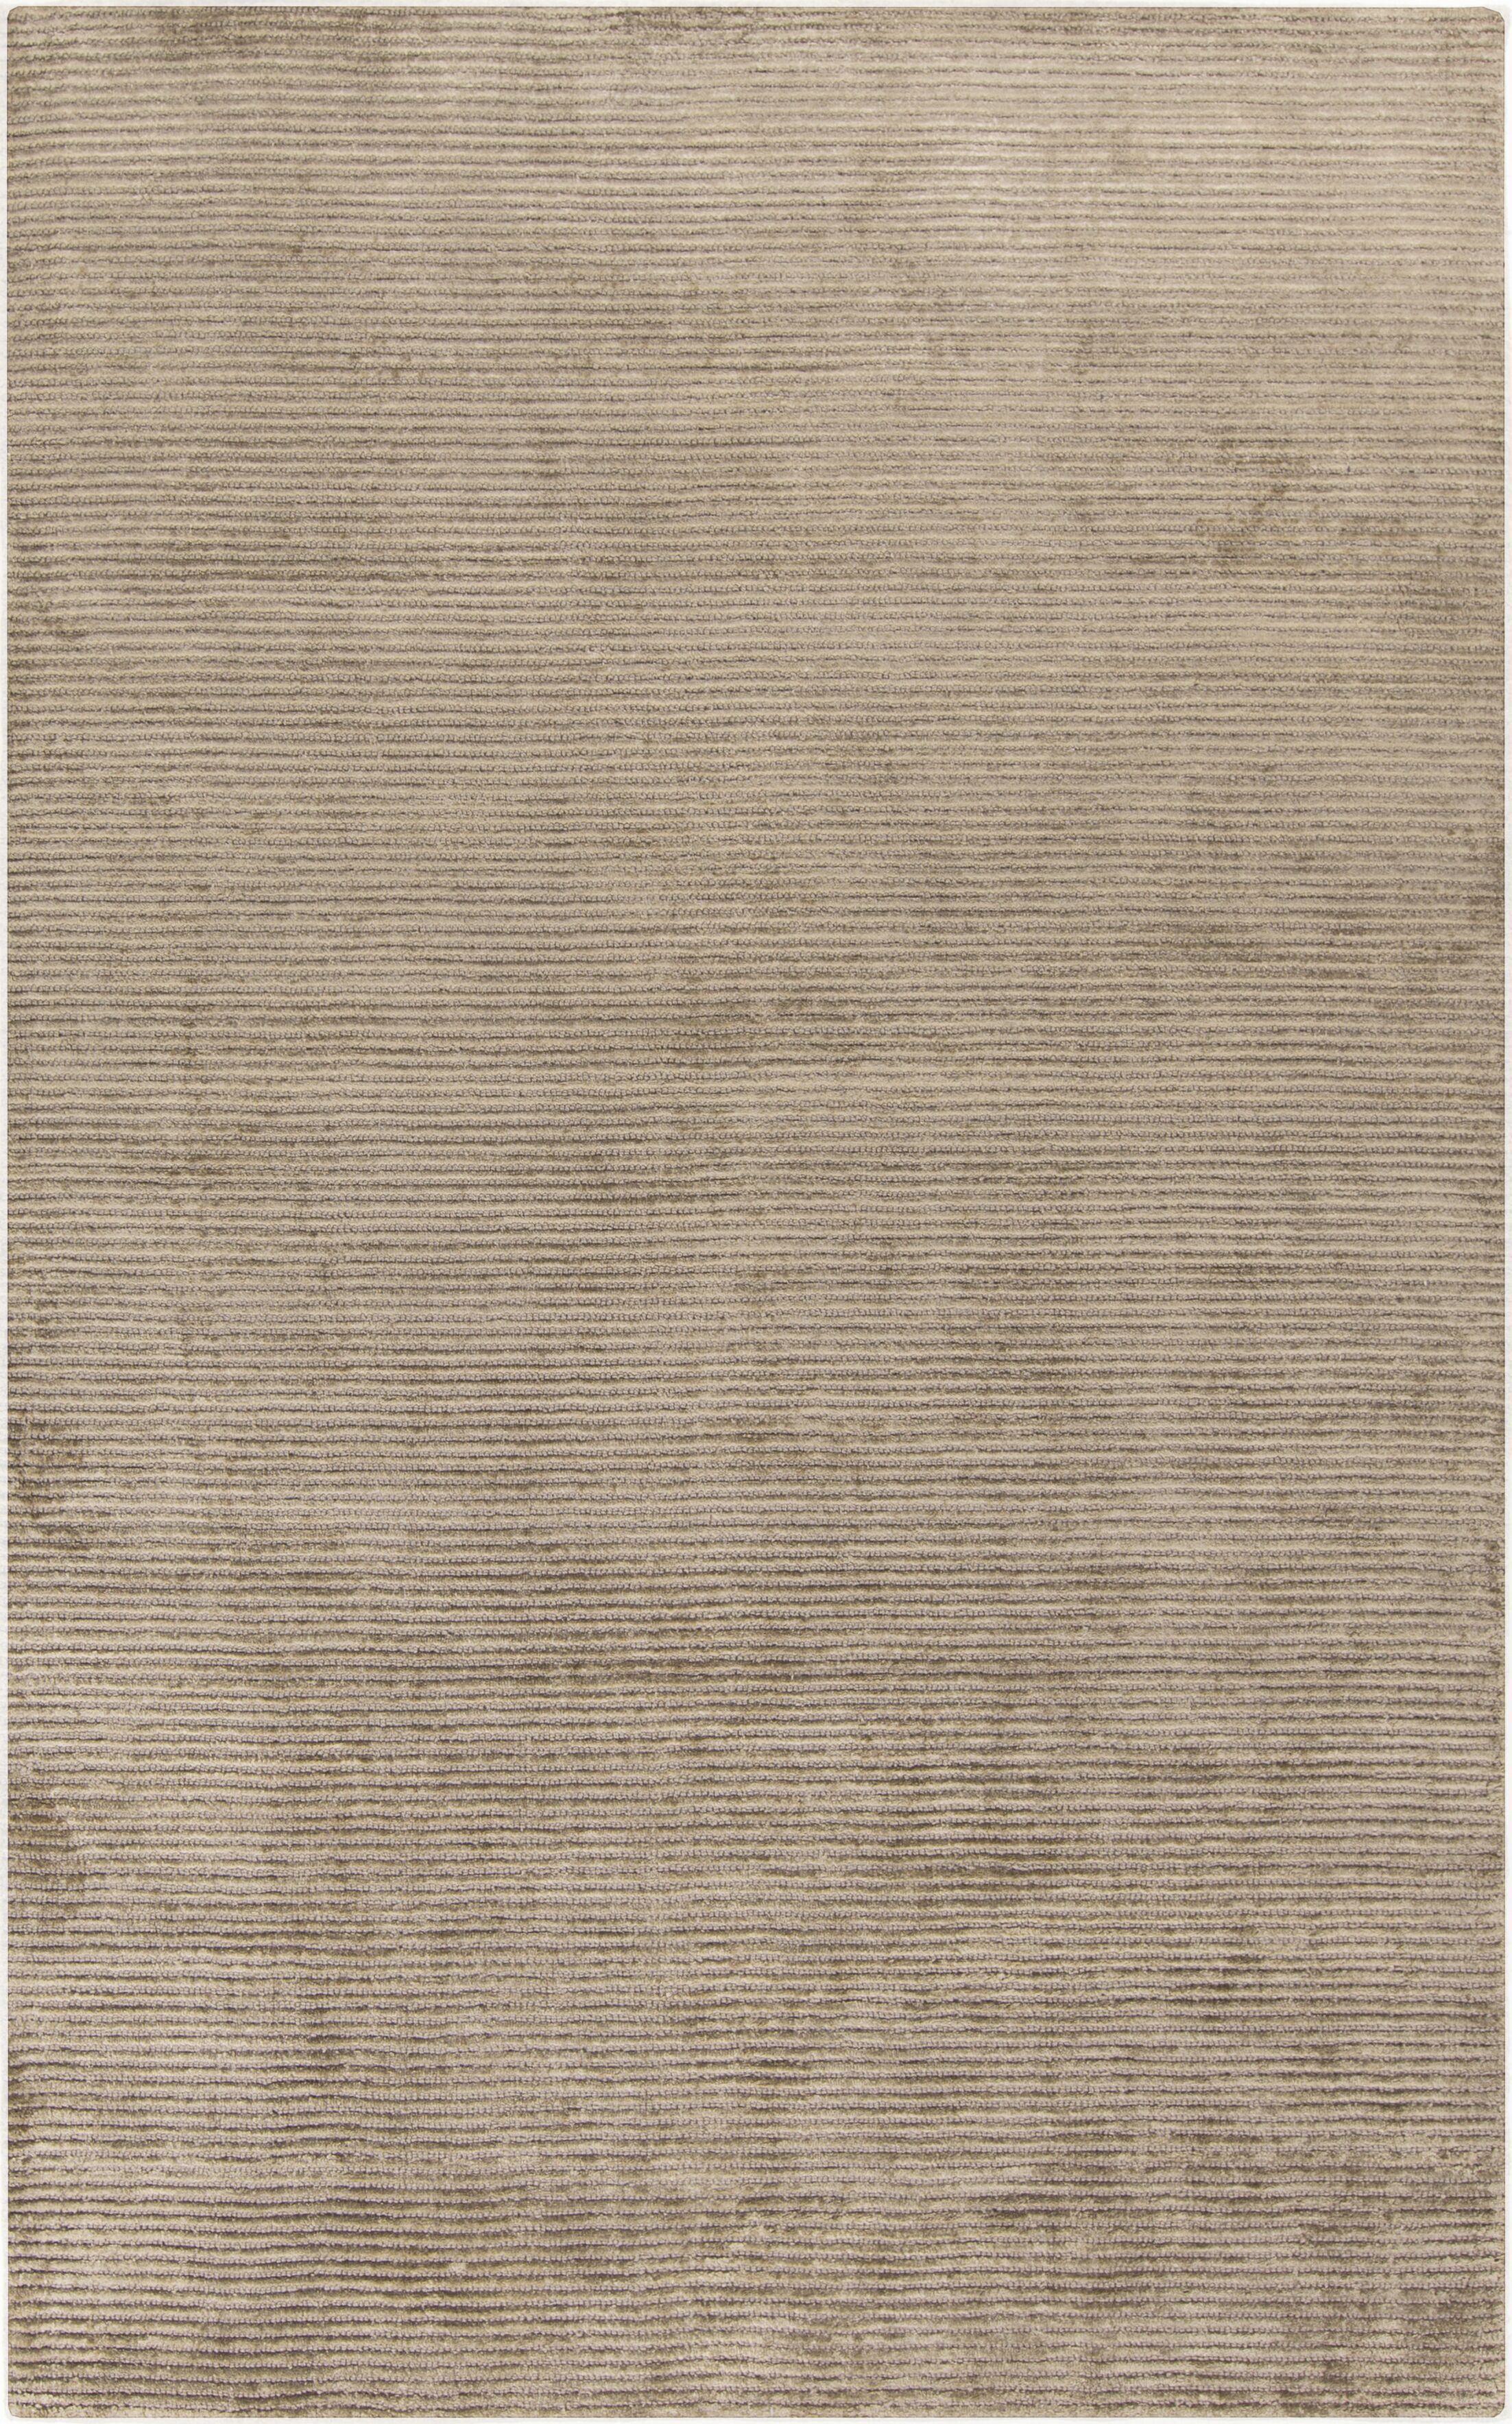 Tiffany Gray Solid Rug Rug Size: Rectangle 3'3